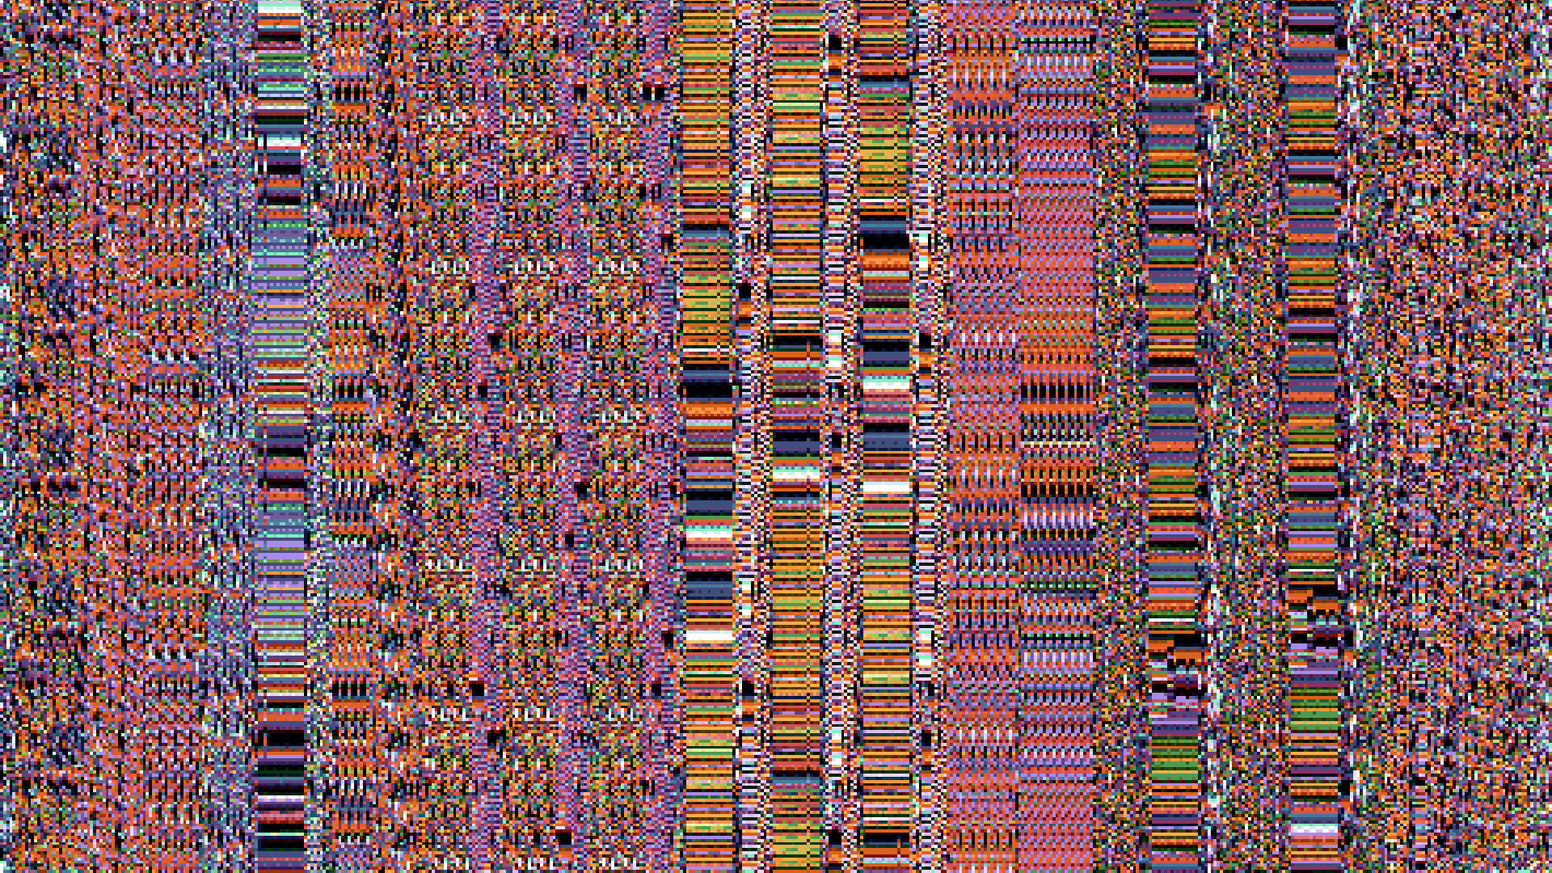 A collection of jacquard woven cotton blankets whose designs are made by visualizing malware samples captured in the wild.